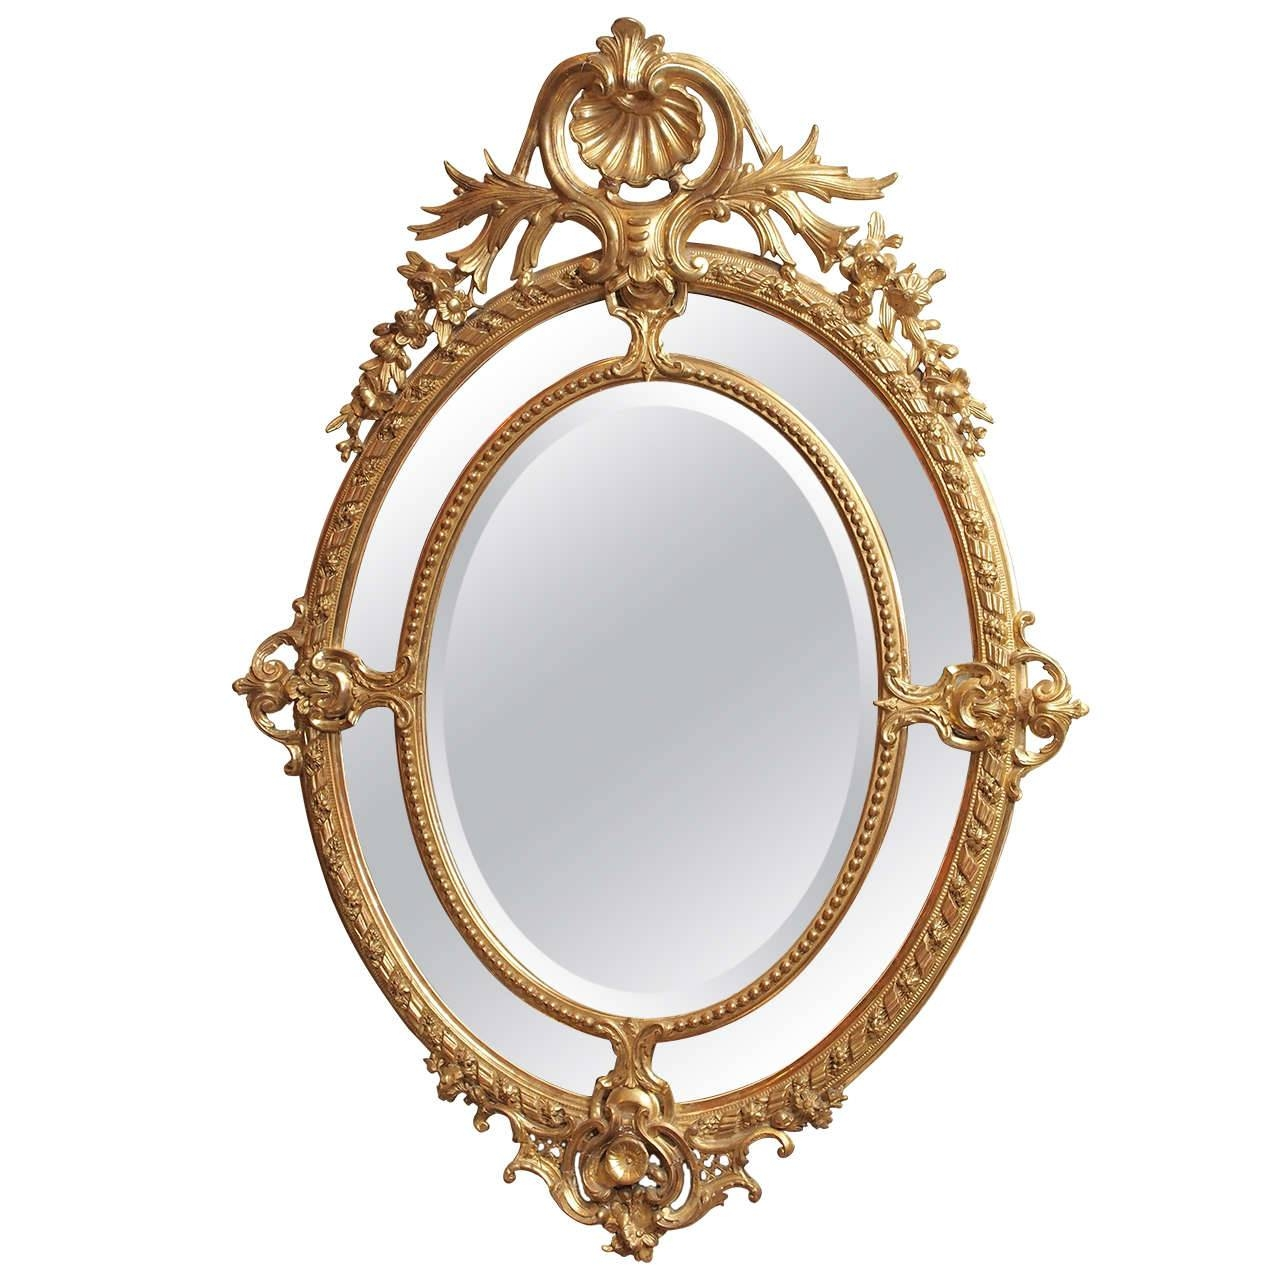 Gold Oval Mirror Vintage 148 Nice Decorating With Ornate Antique Intended For Small Gold Mirrors (View 13 of 25)